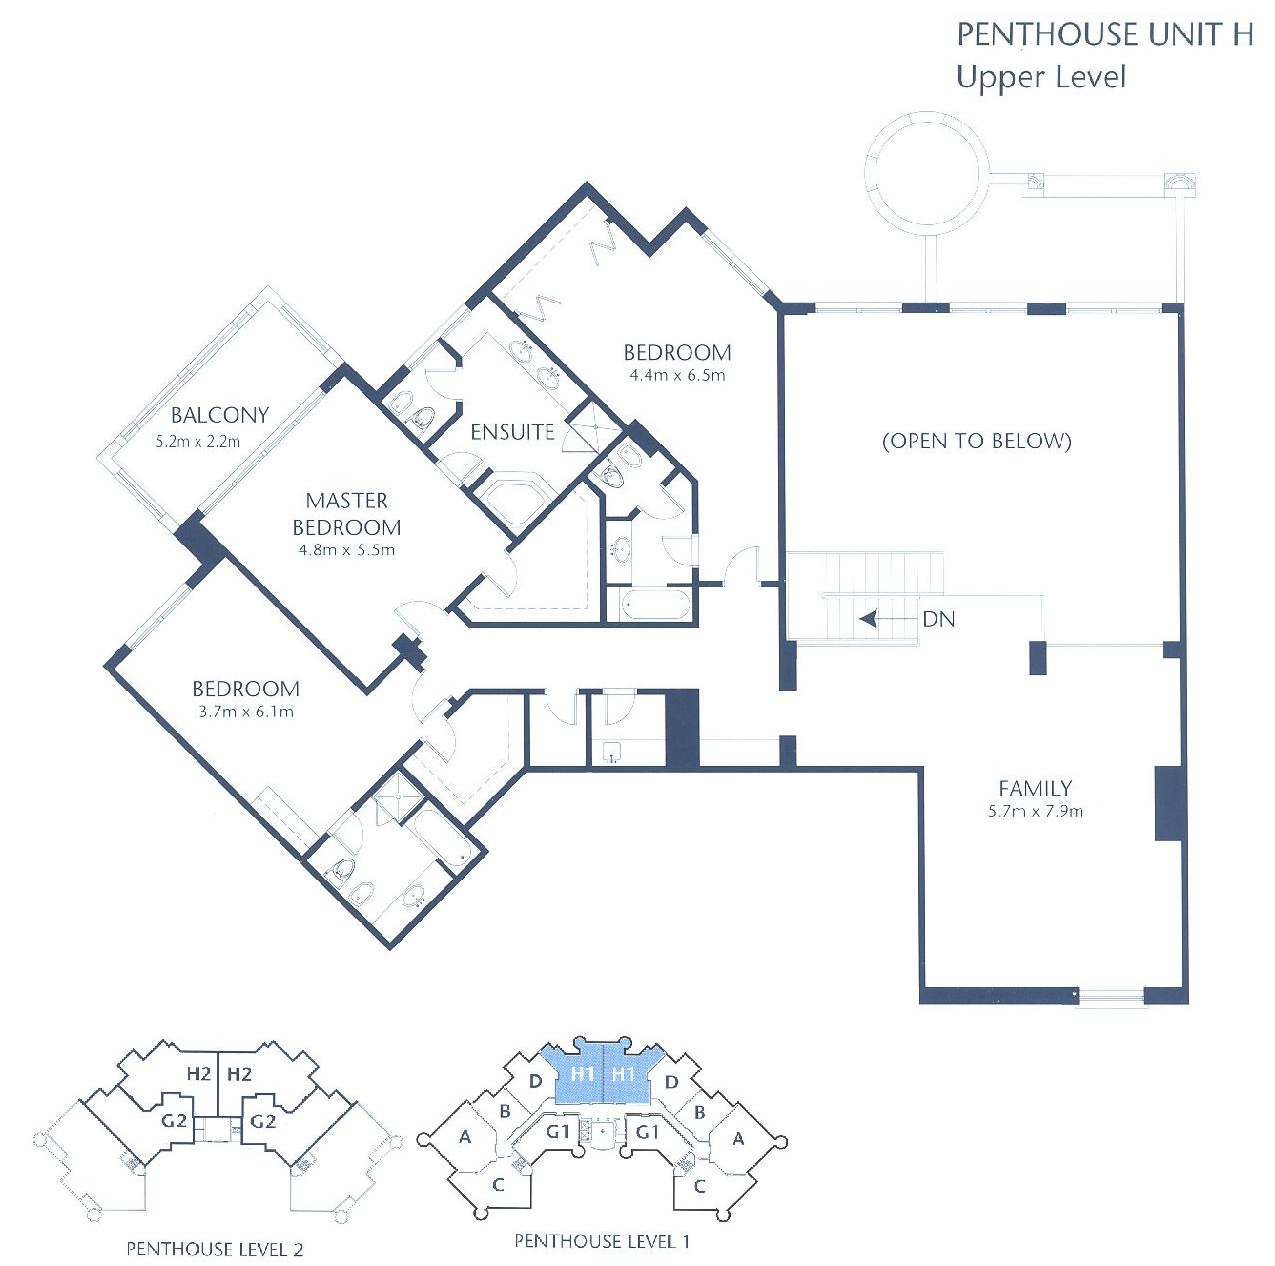 Shoreline apartments floor plans palm jumeirah dubai for Floor plans jumeirah heights